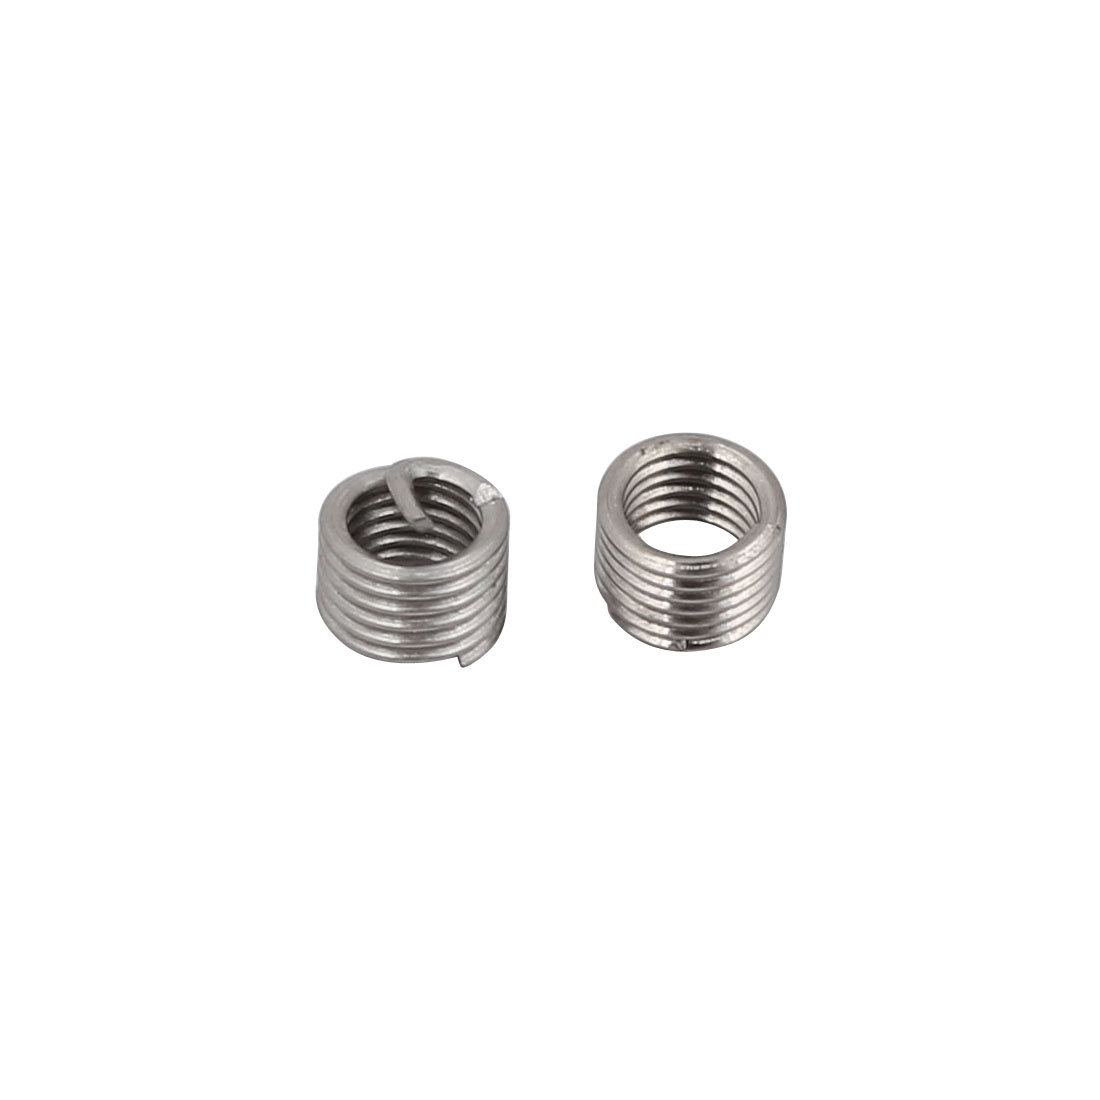 M3x0.5mmx4.5mm 304 Stainless Steel Helical Coil Wire Thread Insert 50pcs - image 1 of 2